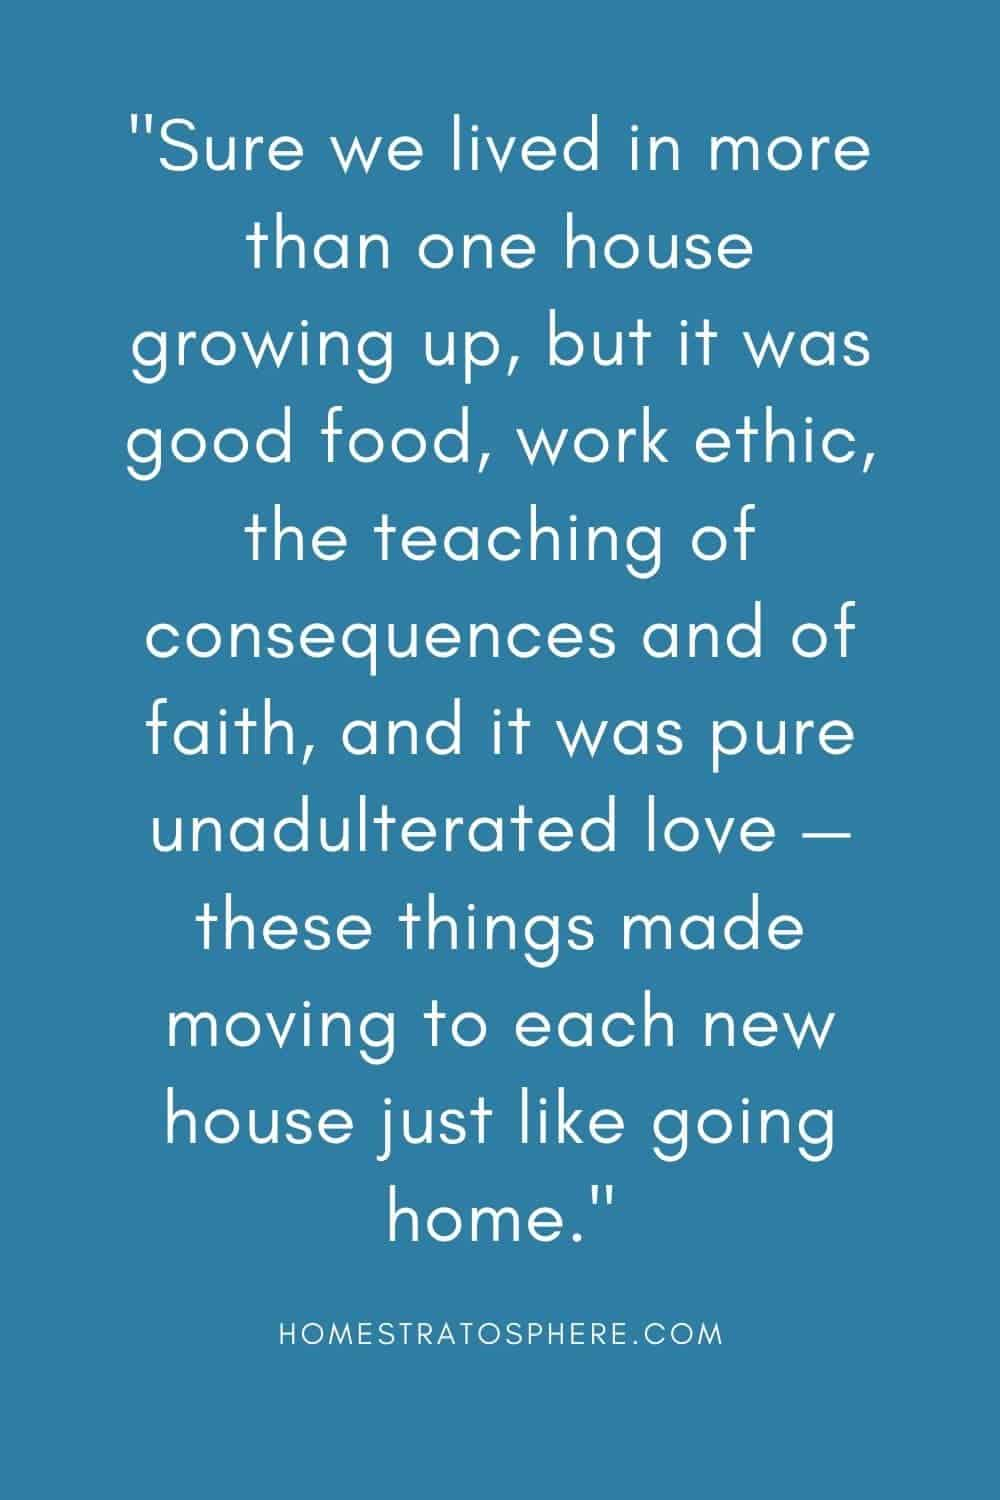 """""""Sure we lived in more than one house growing up, but it was good food, work ethic, the teaching of consequences and of faith, and it was pure unadulterated love — these things made moving to each new house just like going home."""""""